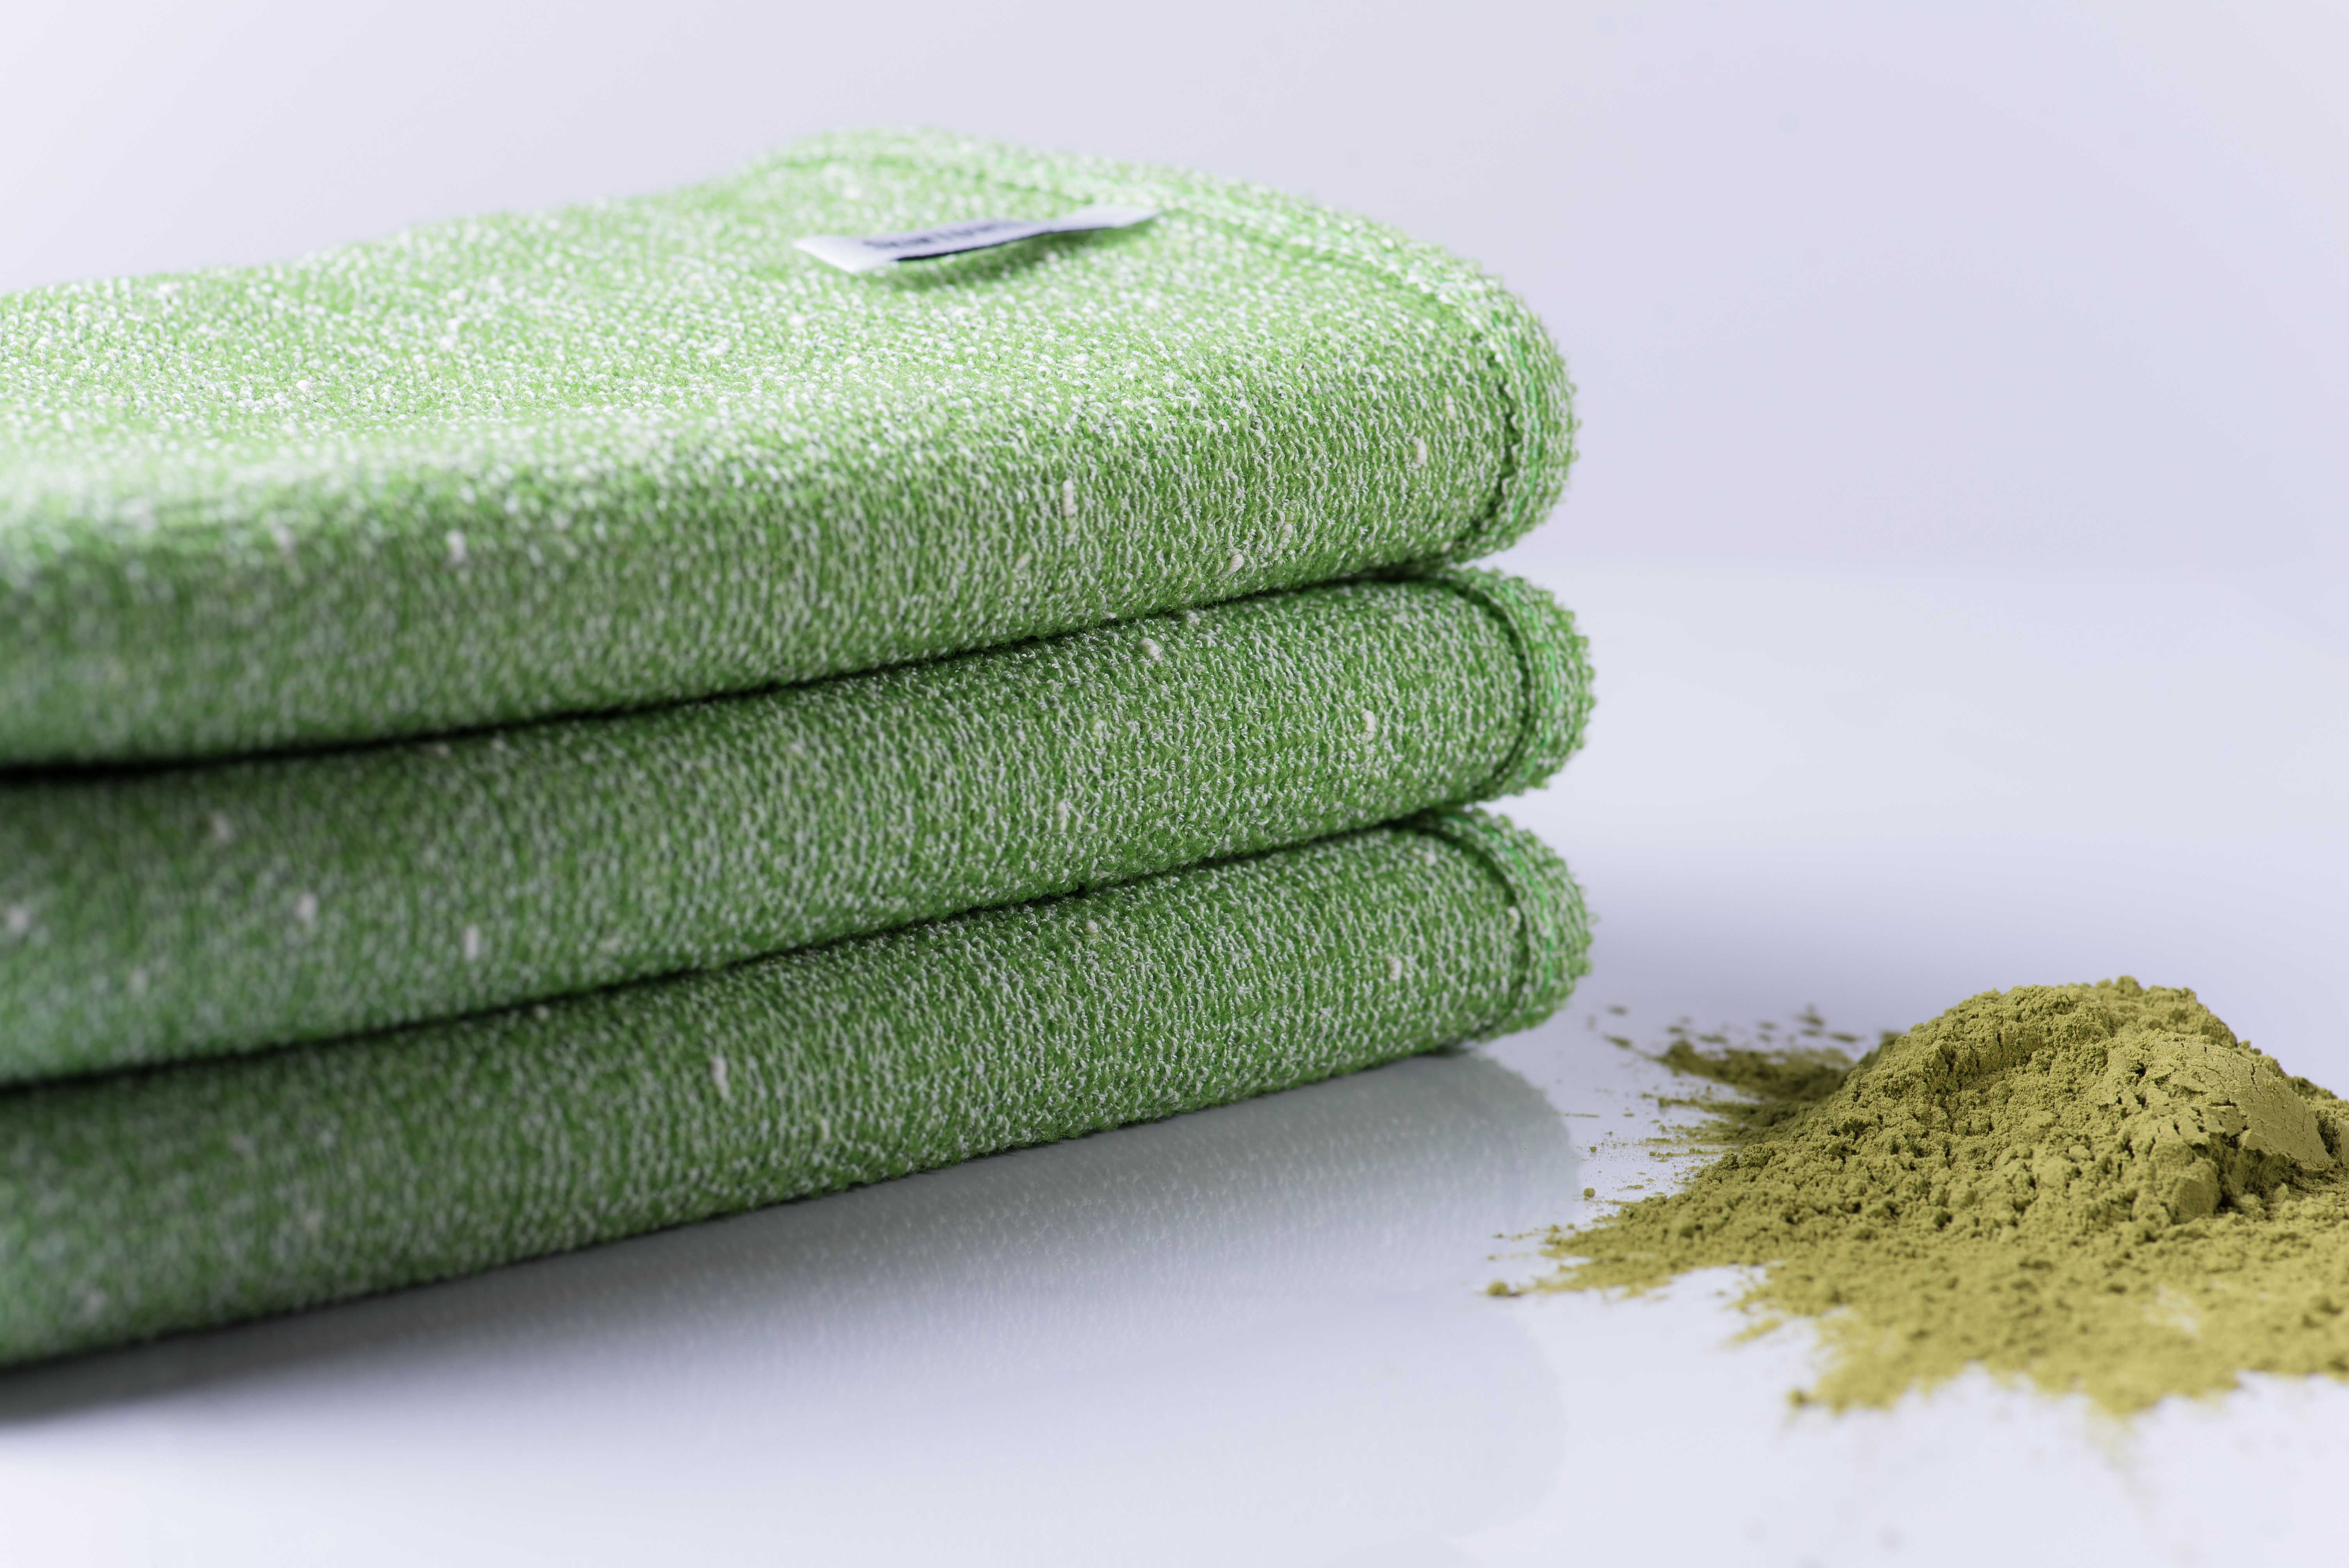 SKINTOWEL   Exfoliating Wash Cloth, Loofah, Bath Brush All In One. This  Green Tea Shower Towel Delivers The Best Shower Experience. Use With Any  Cleanser, ...